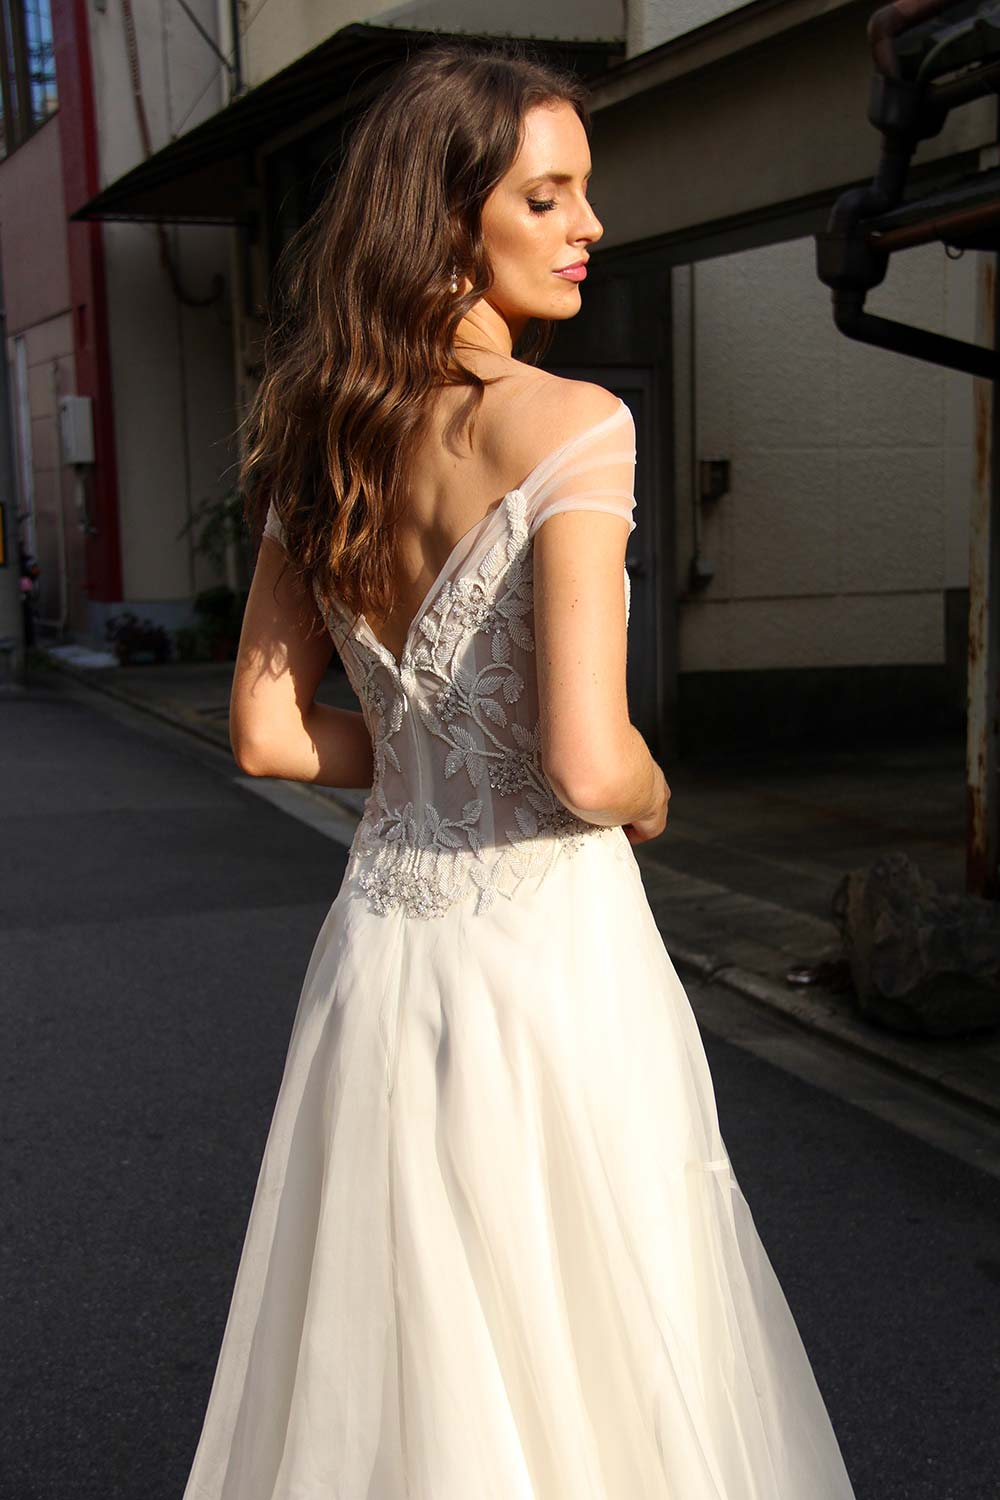 Female model wearing Vinka Design An Oriental Affair Wedding Dress. In a quiet japanese street the back detail of a boned, structured, semi-sheer bodice and a skirt made of soft silk organza.